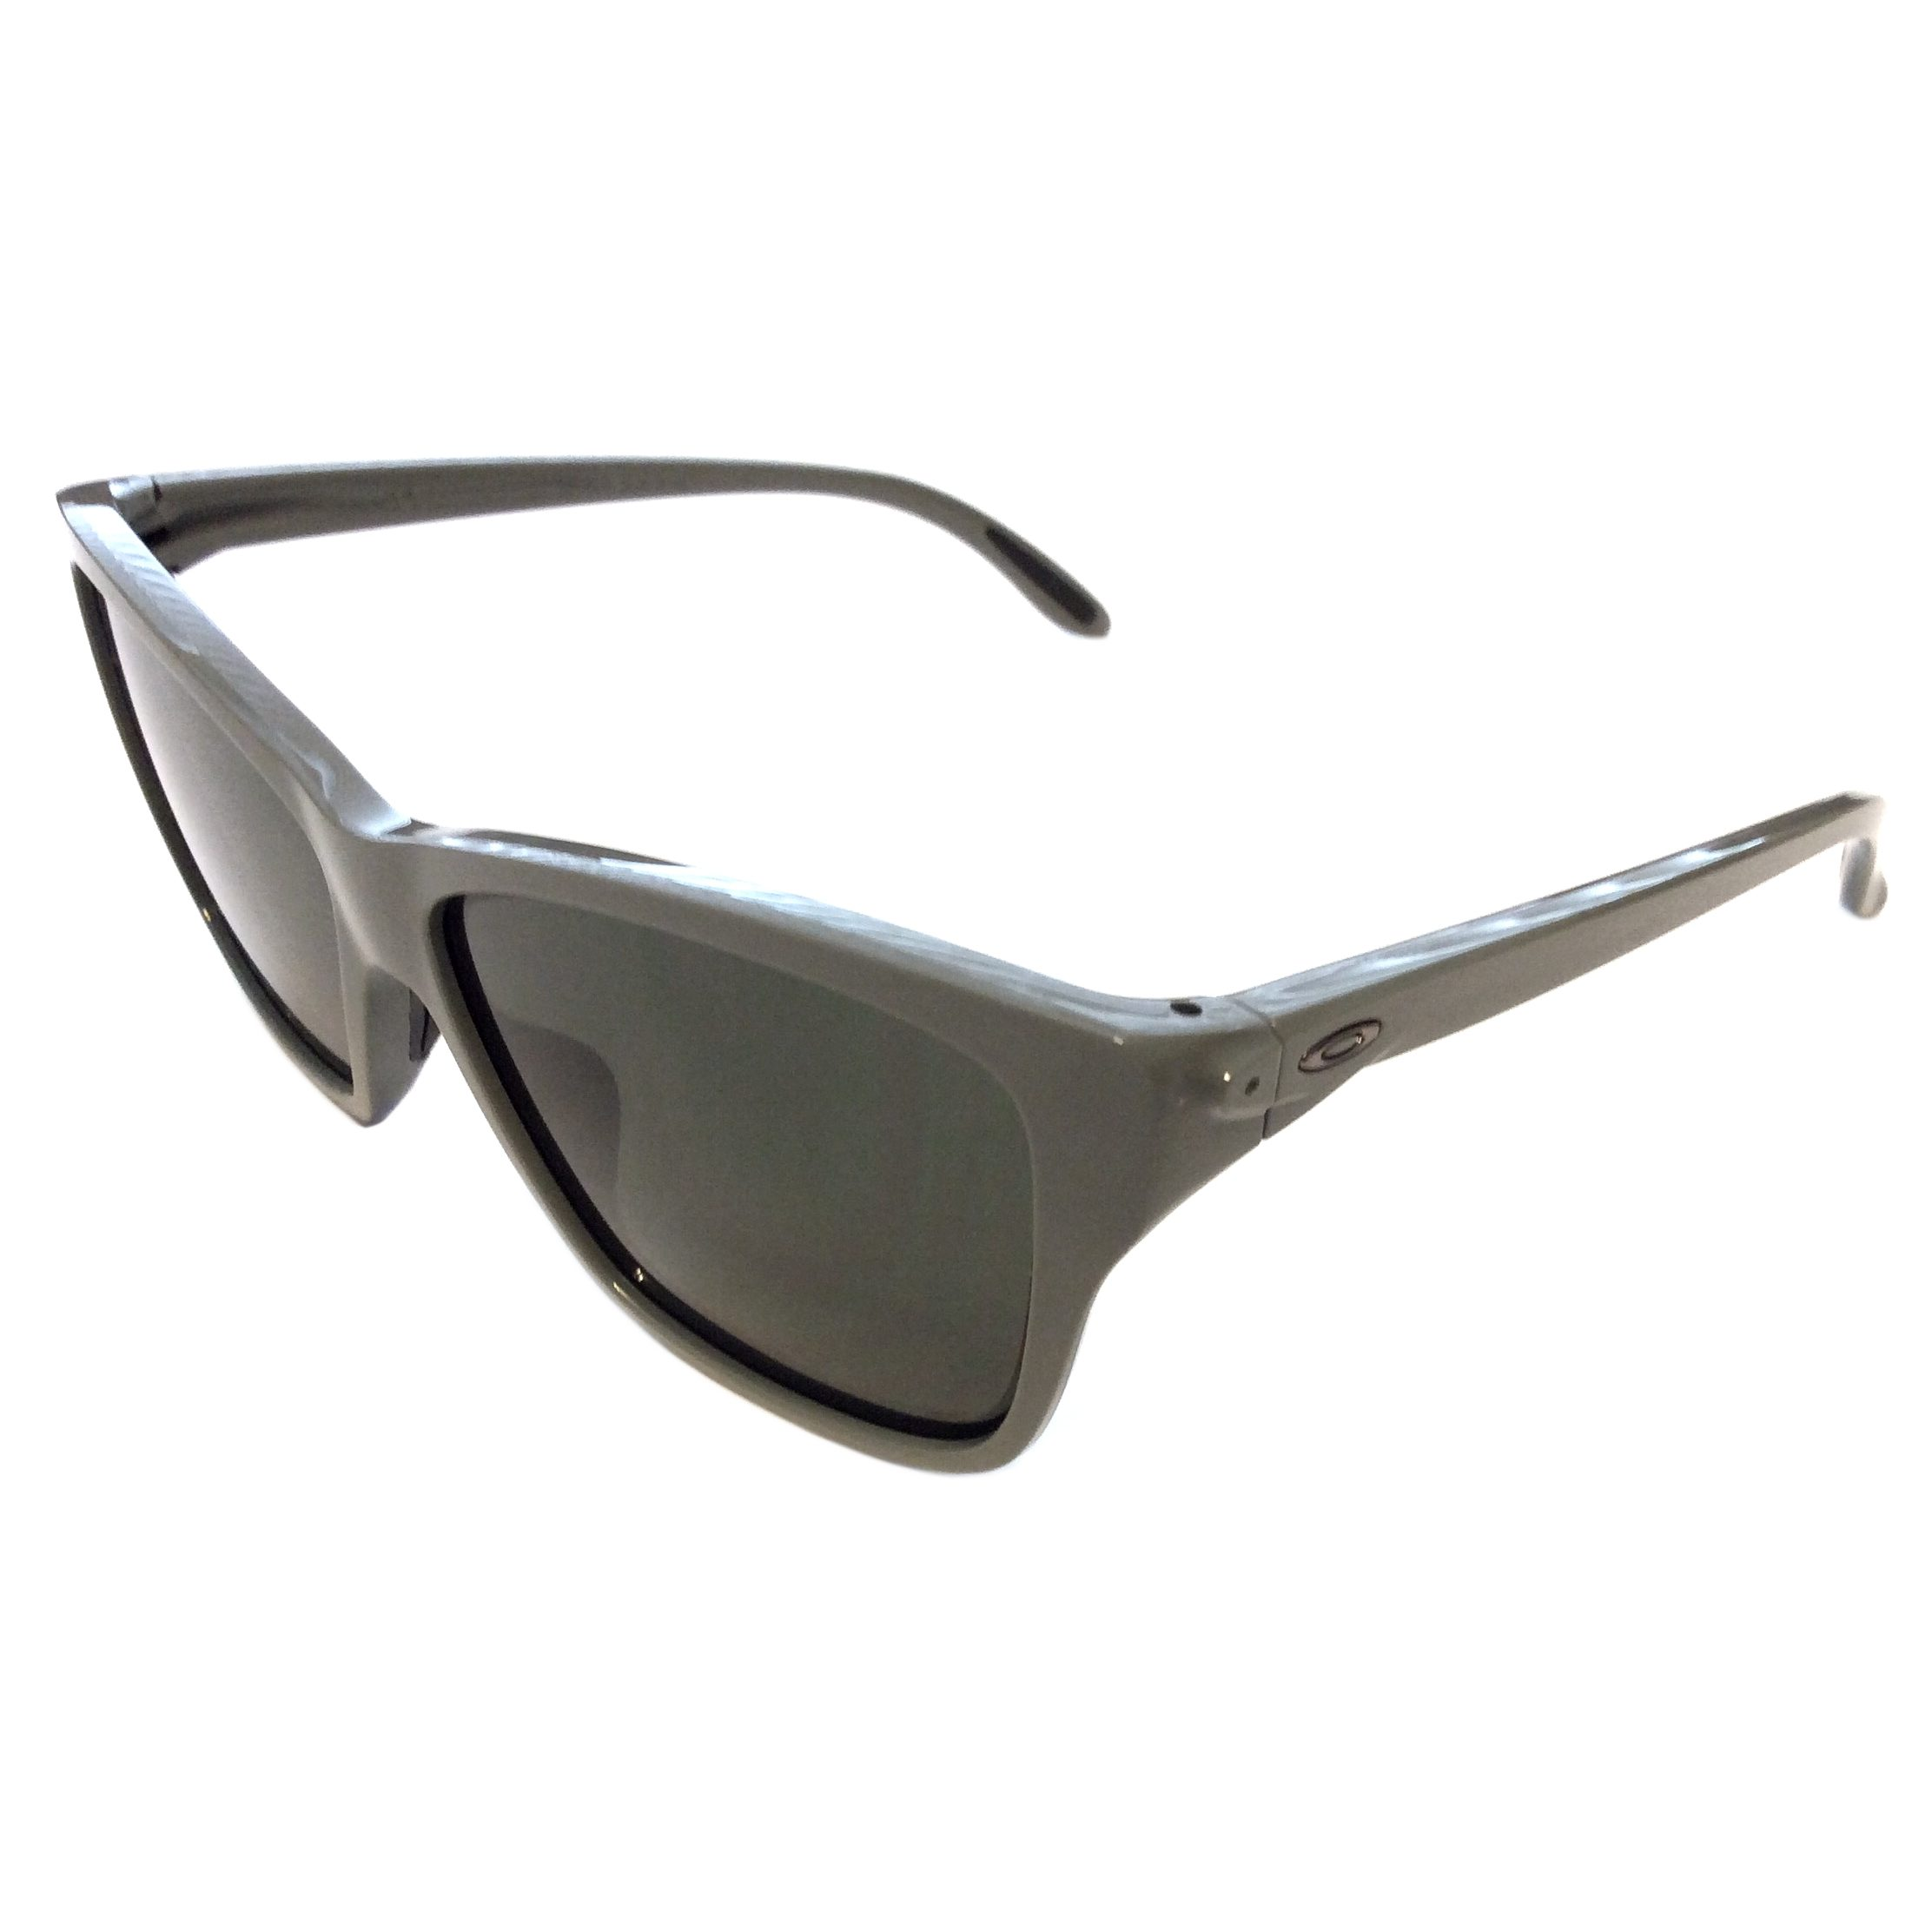 06c4cc3f25d29 Oakley Hold On Sunglasses – Light Olive Green Frame – Dark Gray Lens  009298-05